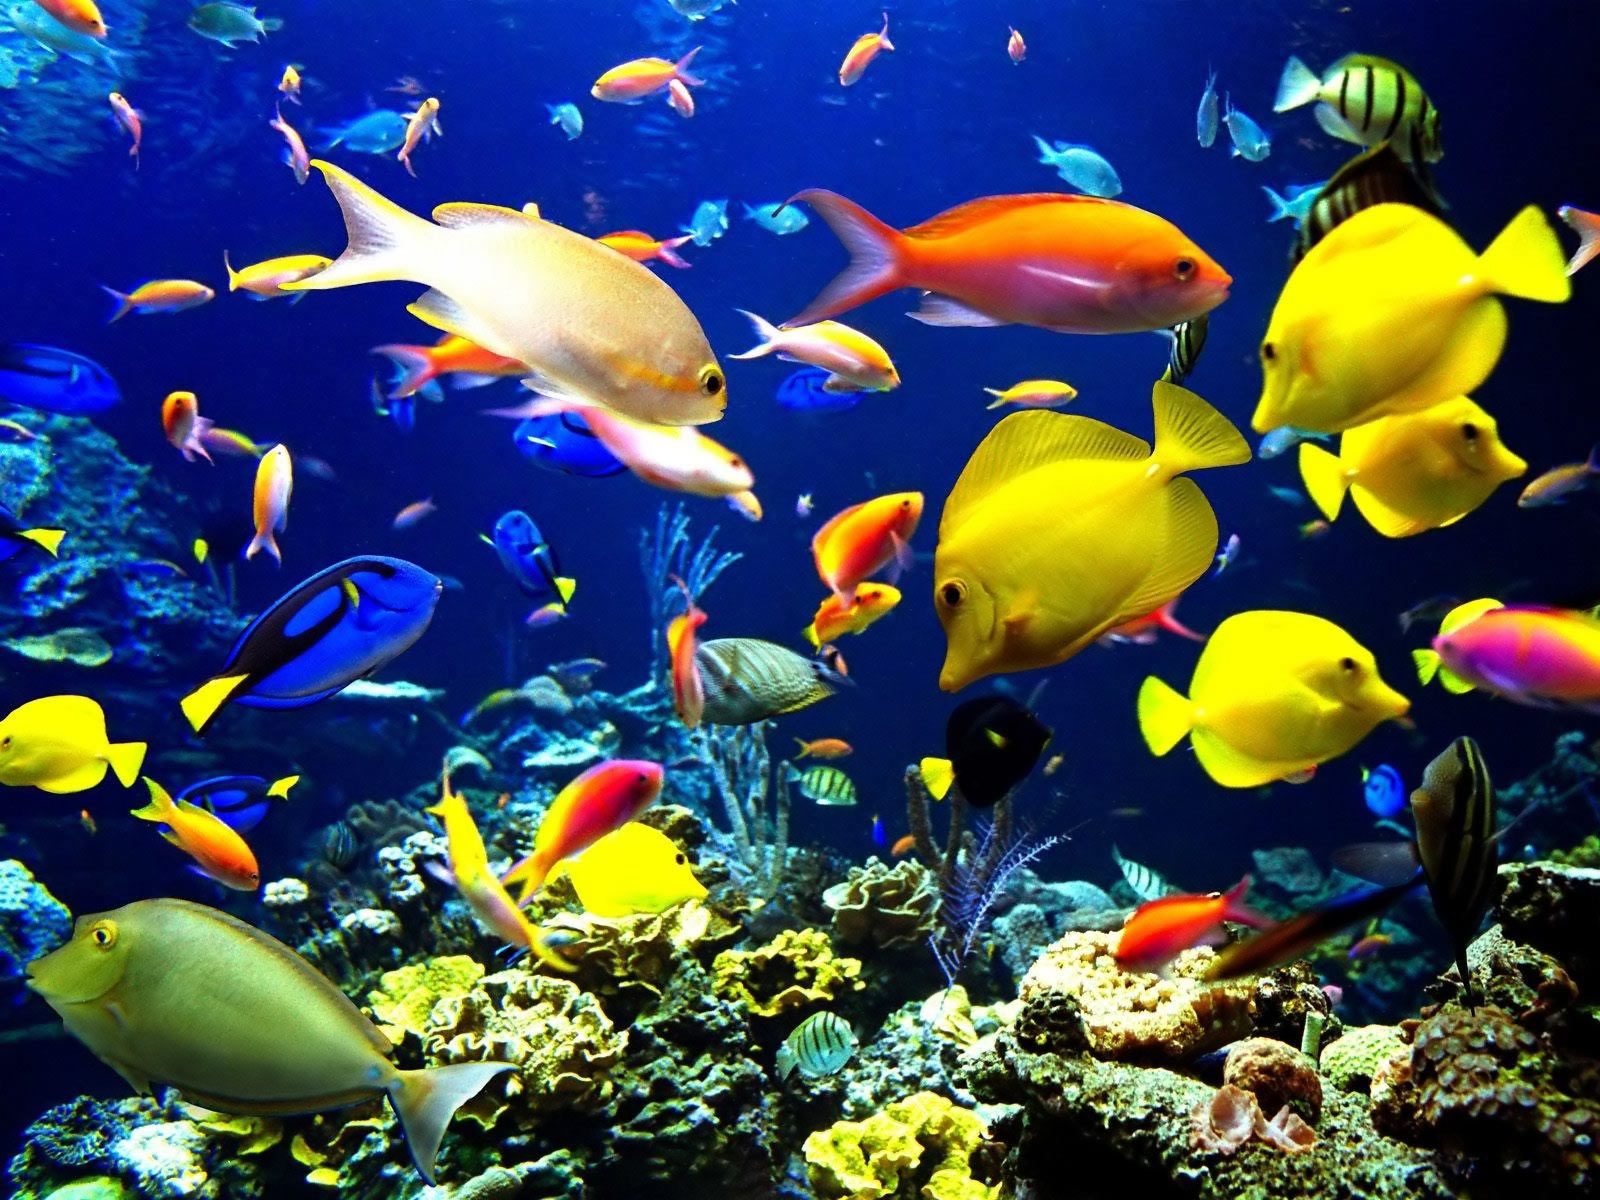 Android Live Fish Wallpaper 1600x1200 Full HD Wallpapers 1600x1200